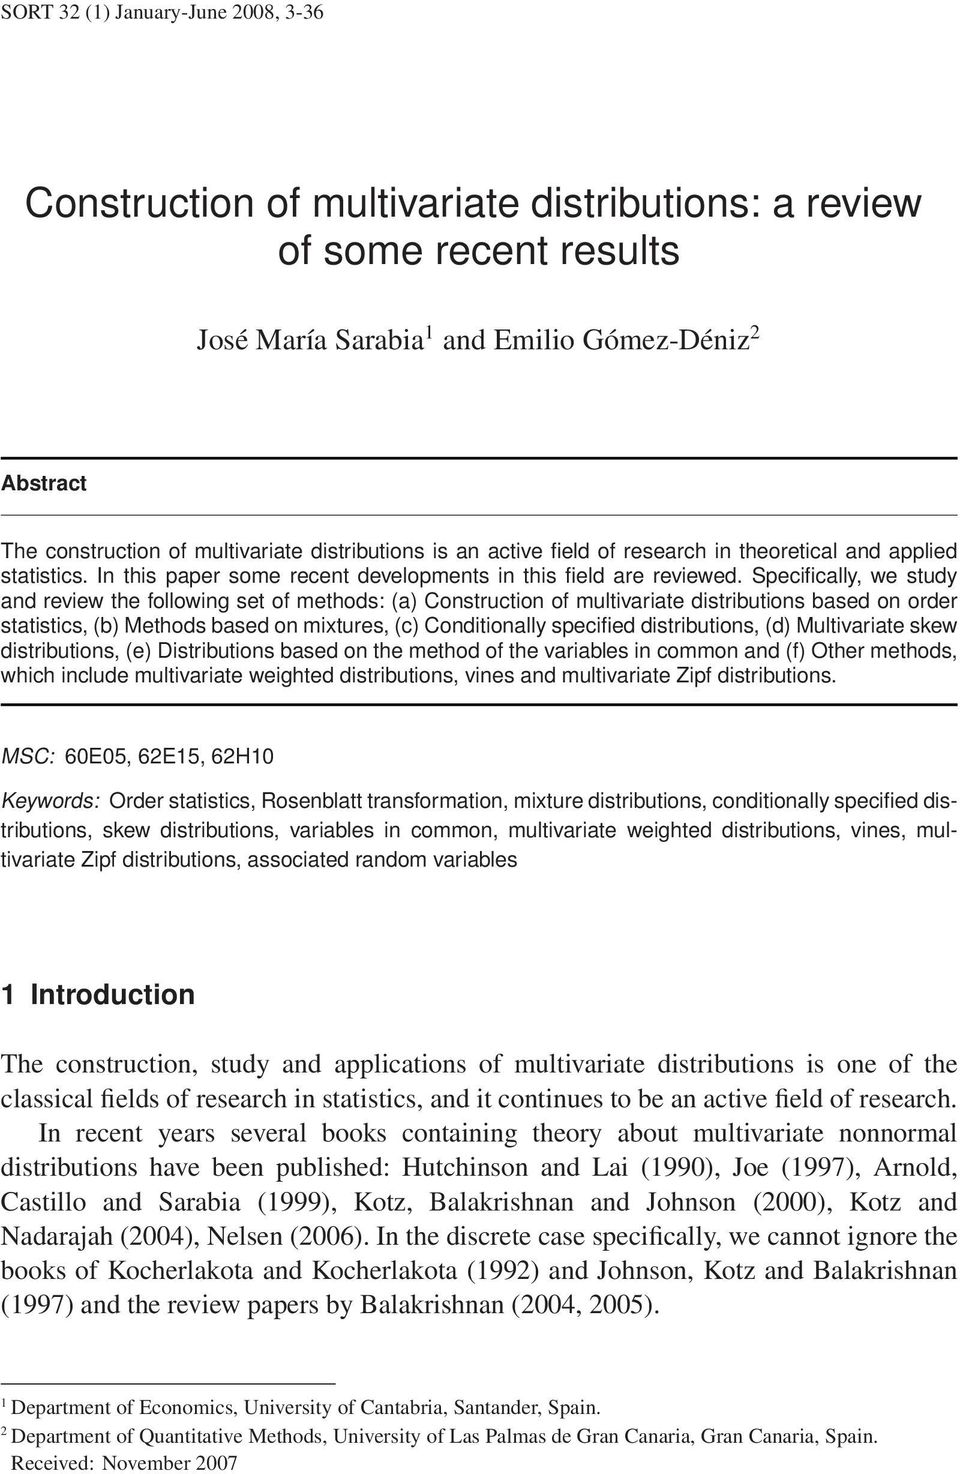 es Construction of multivariate distributions: a review of some recent results José María Sarabia 1 and Emilio Gómez-Déniz 2 Abstract The construction of multivariate distributions is an active field